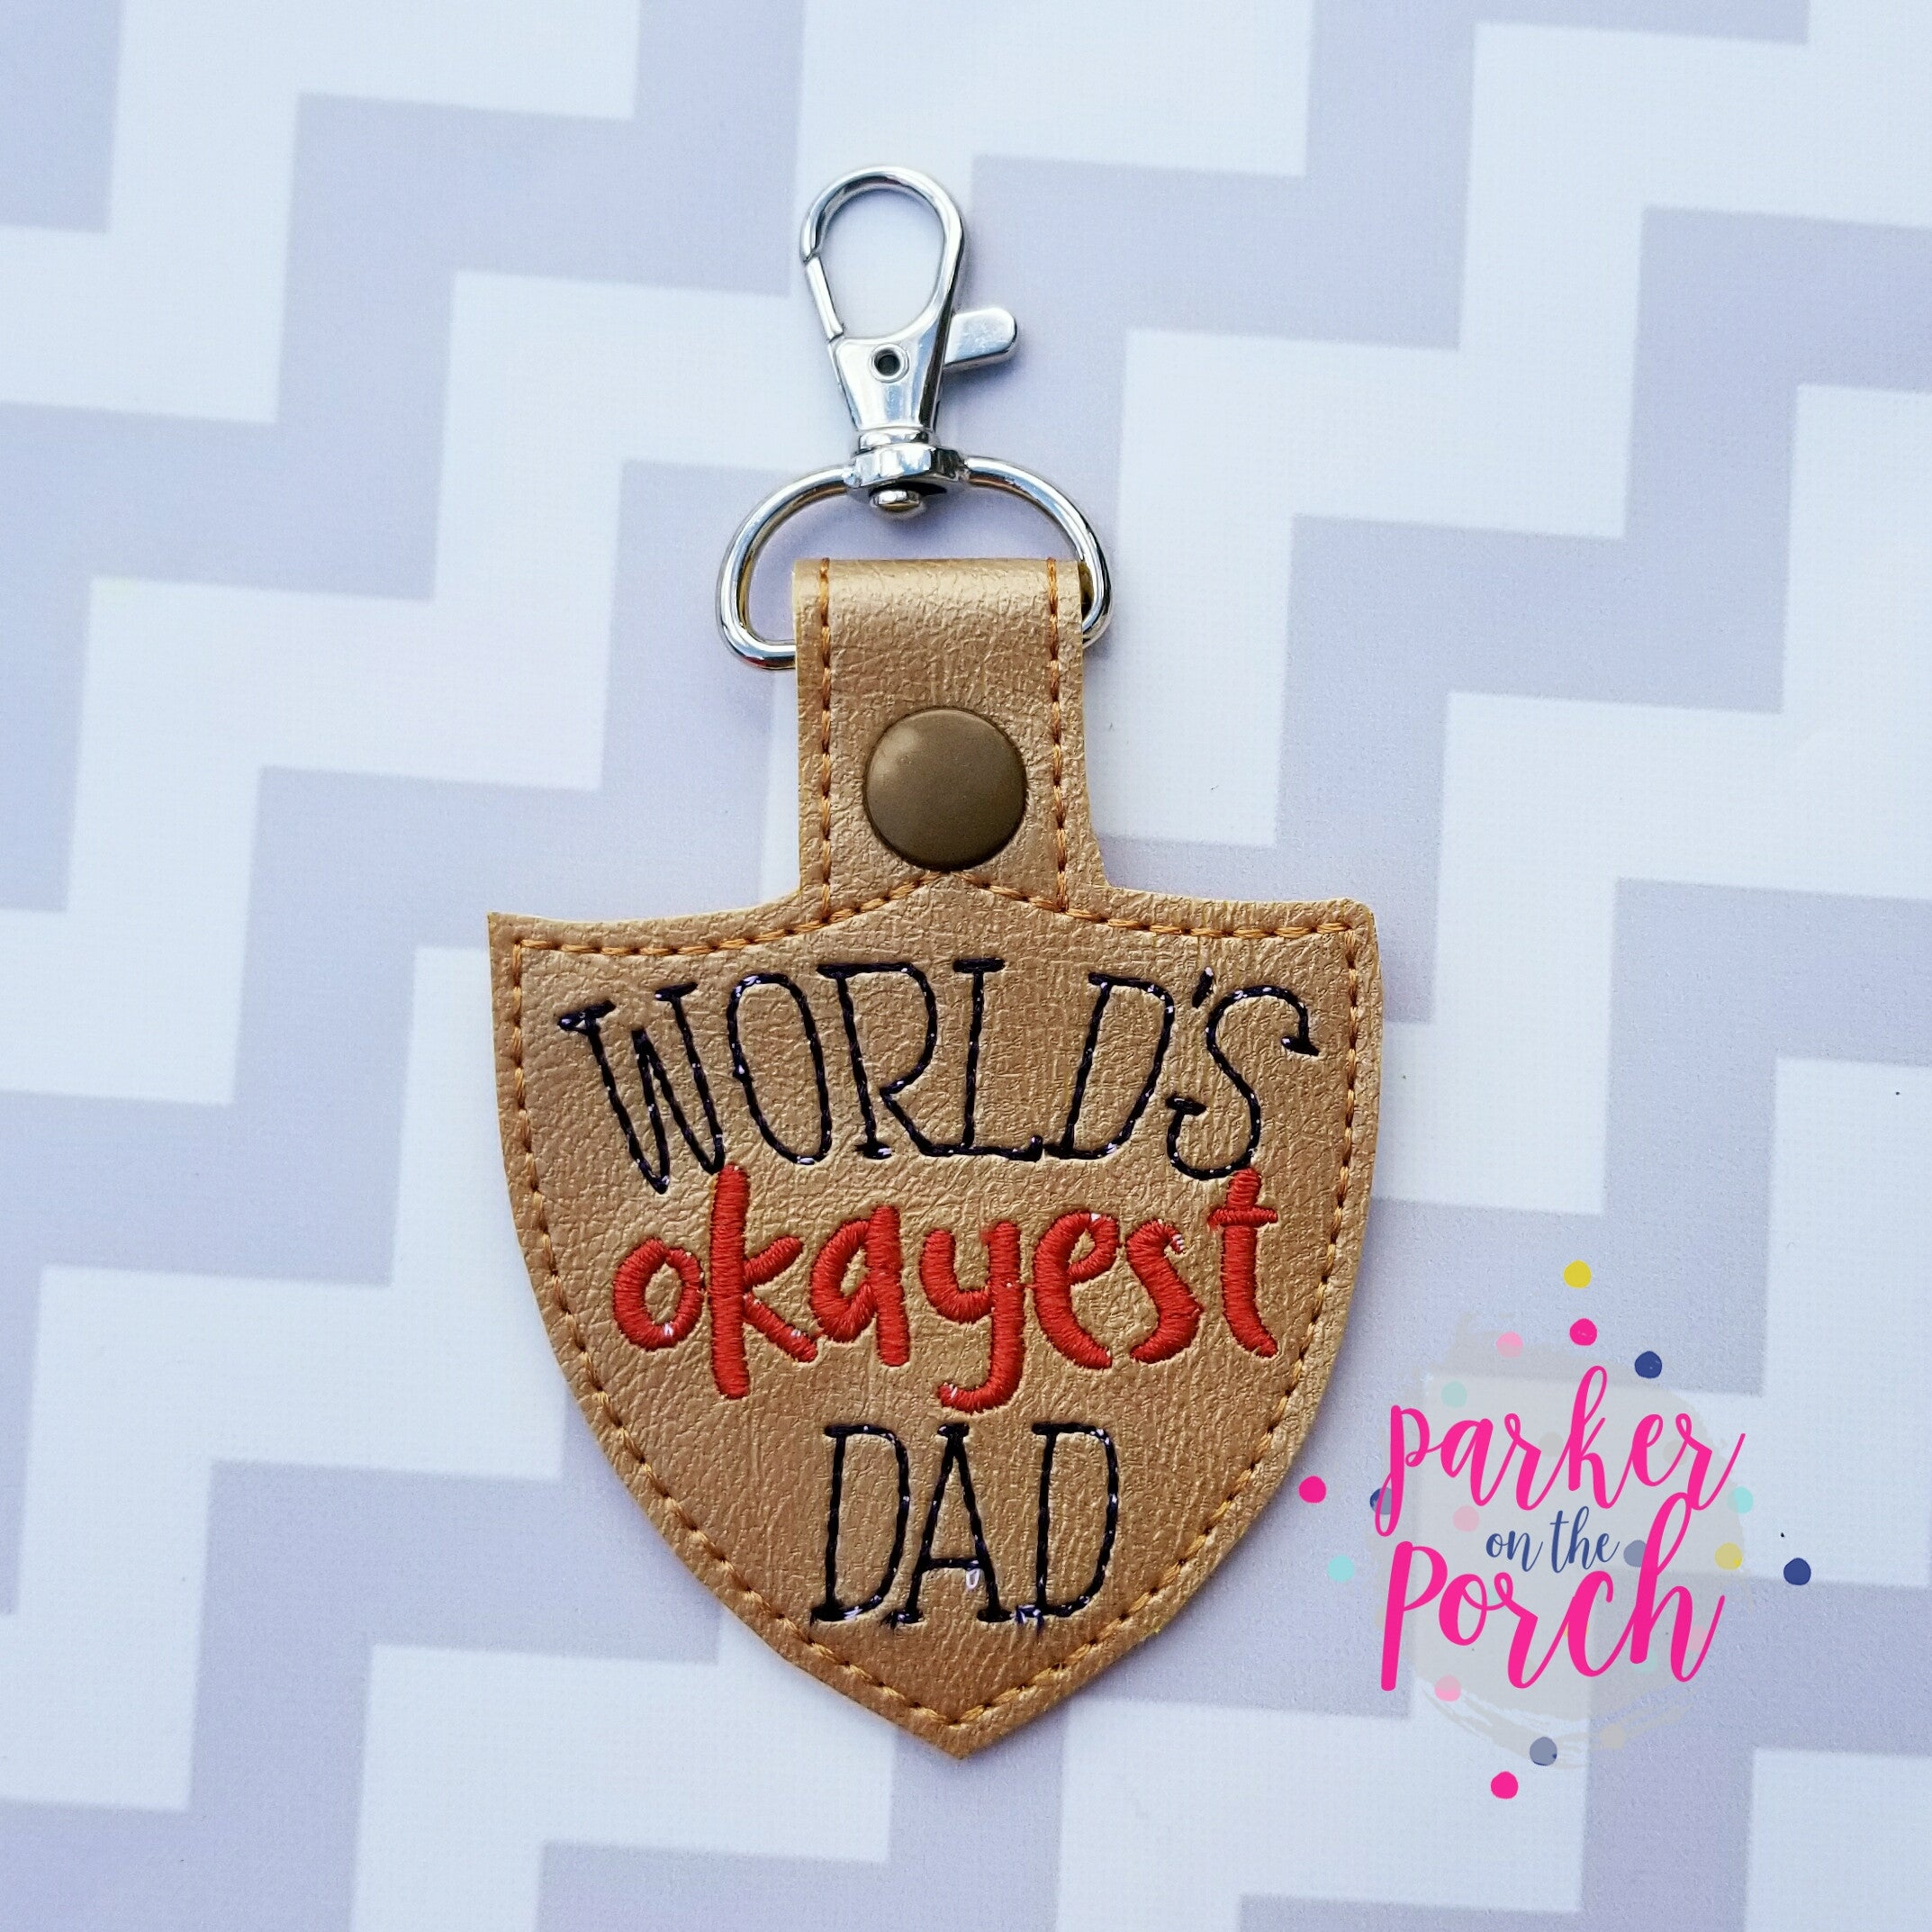 Digital Download- World's Okayest Dad - Pop- Papa Snaptab - in the hoop machine embroidery ITH pattern